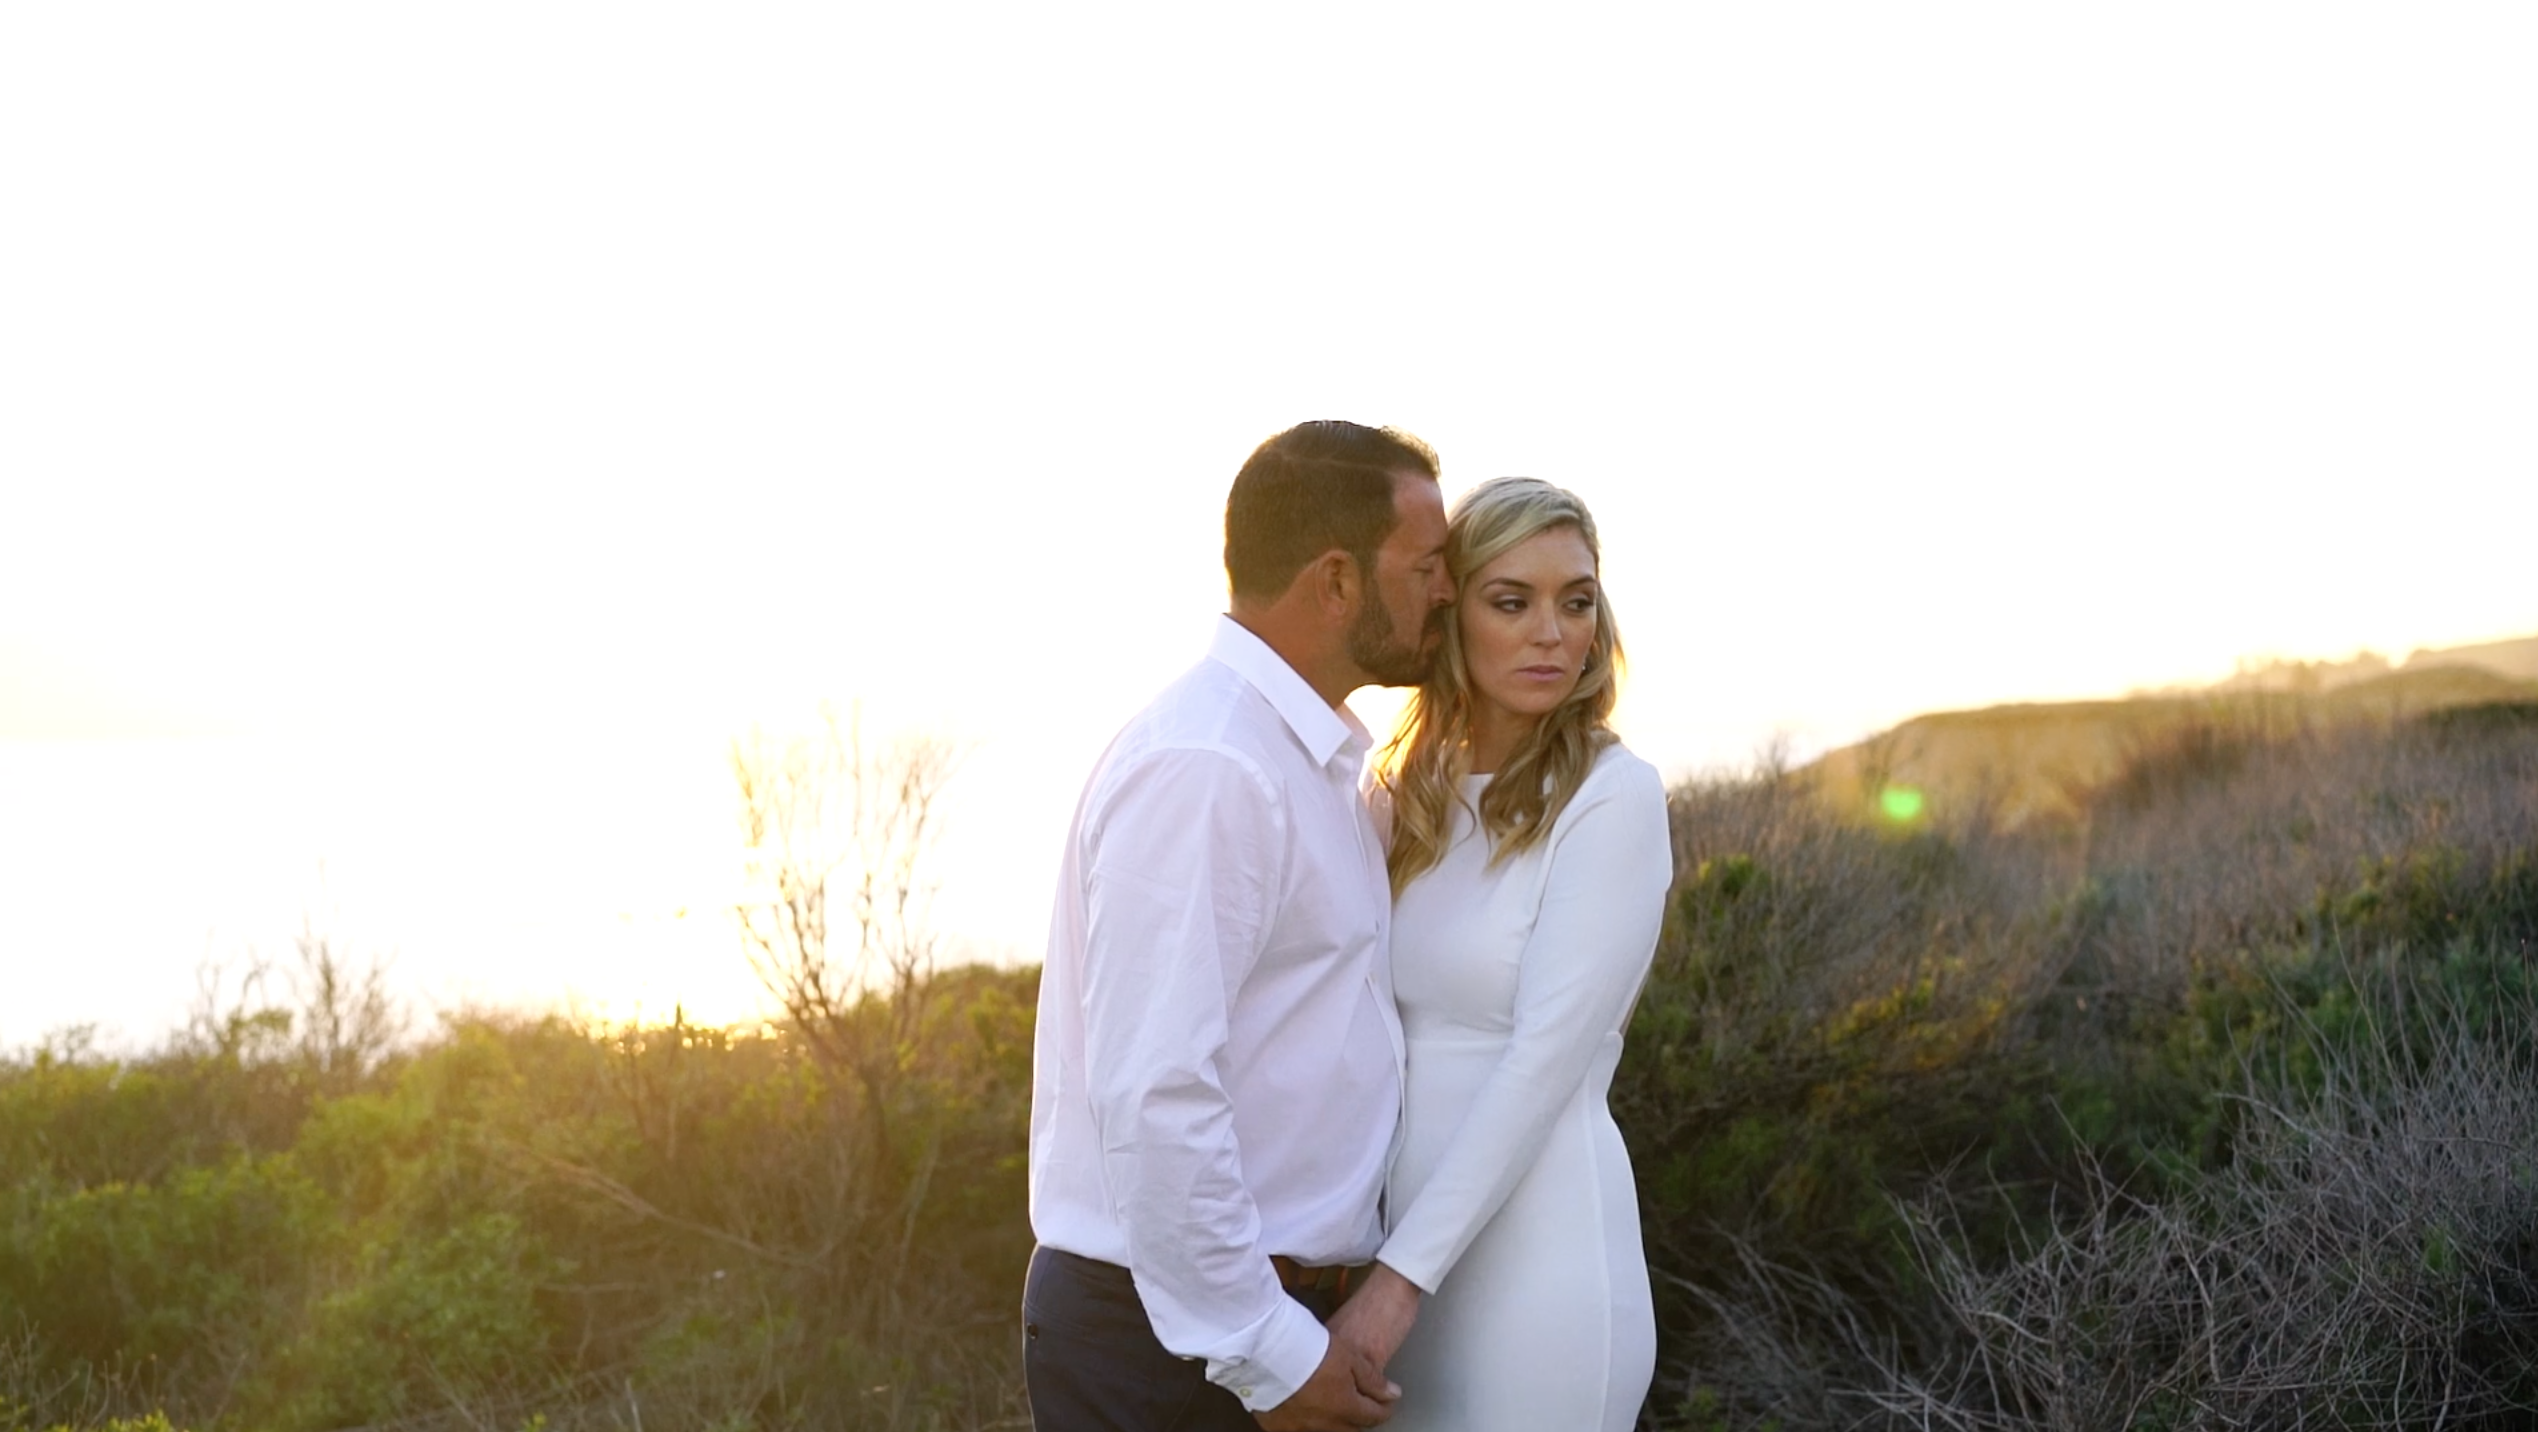 Alyssa + Mike | Santa Barbara, California | Santa Barbara Courthouse